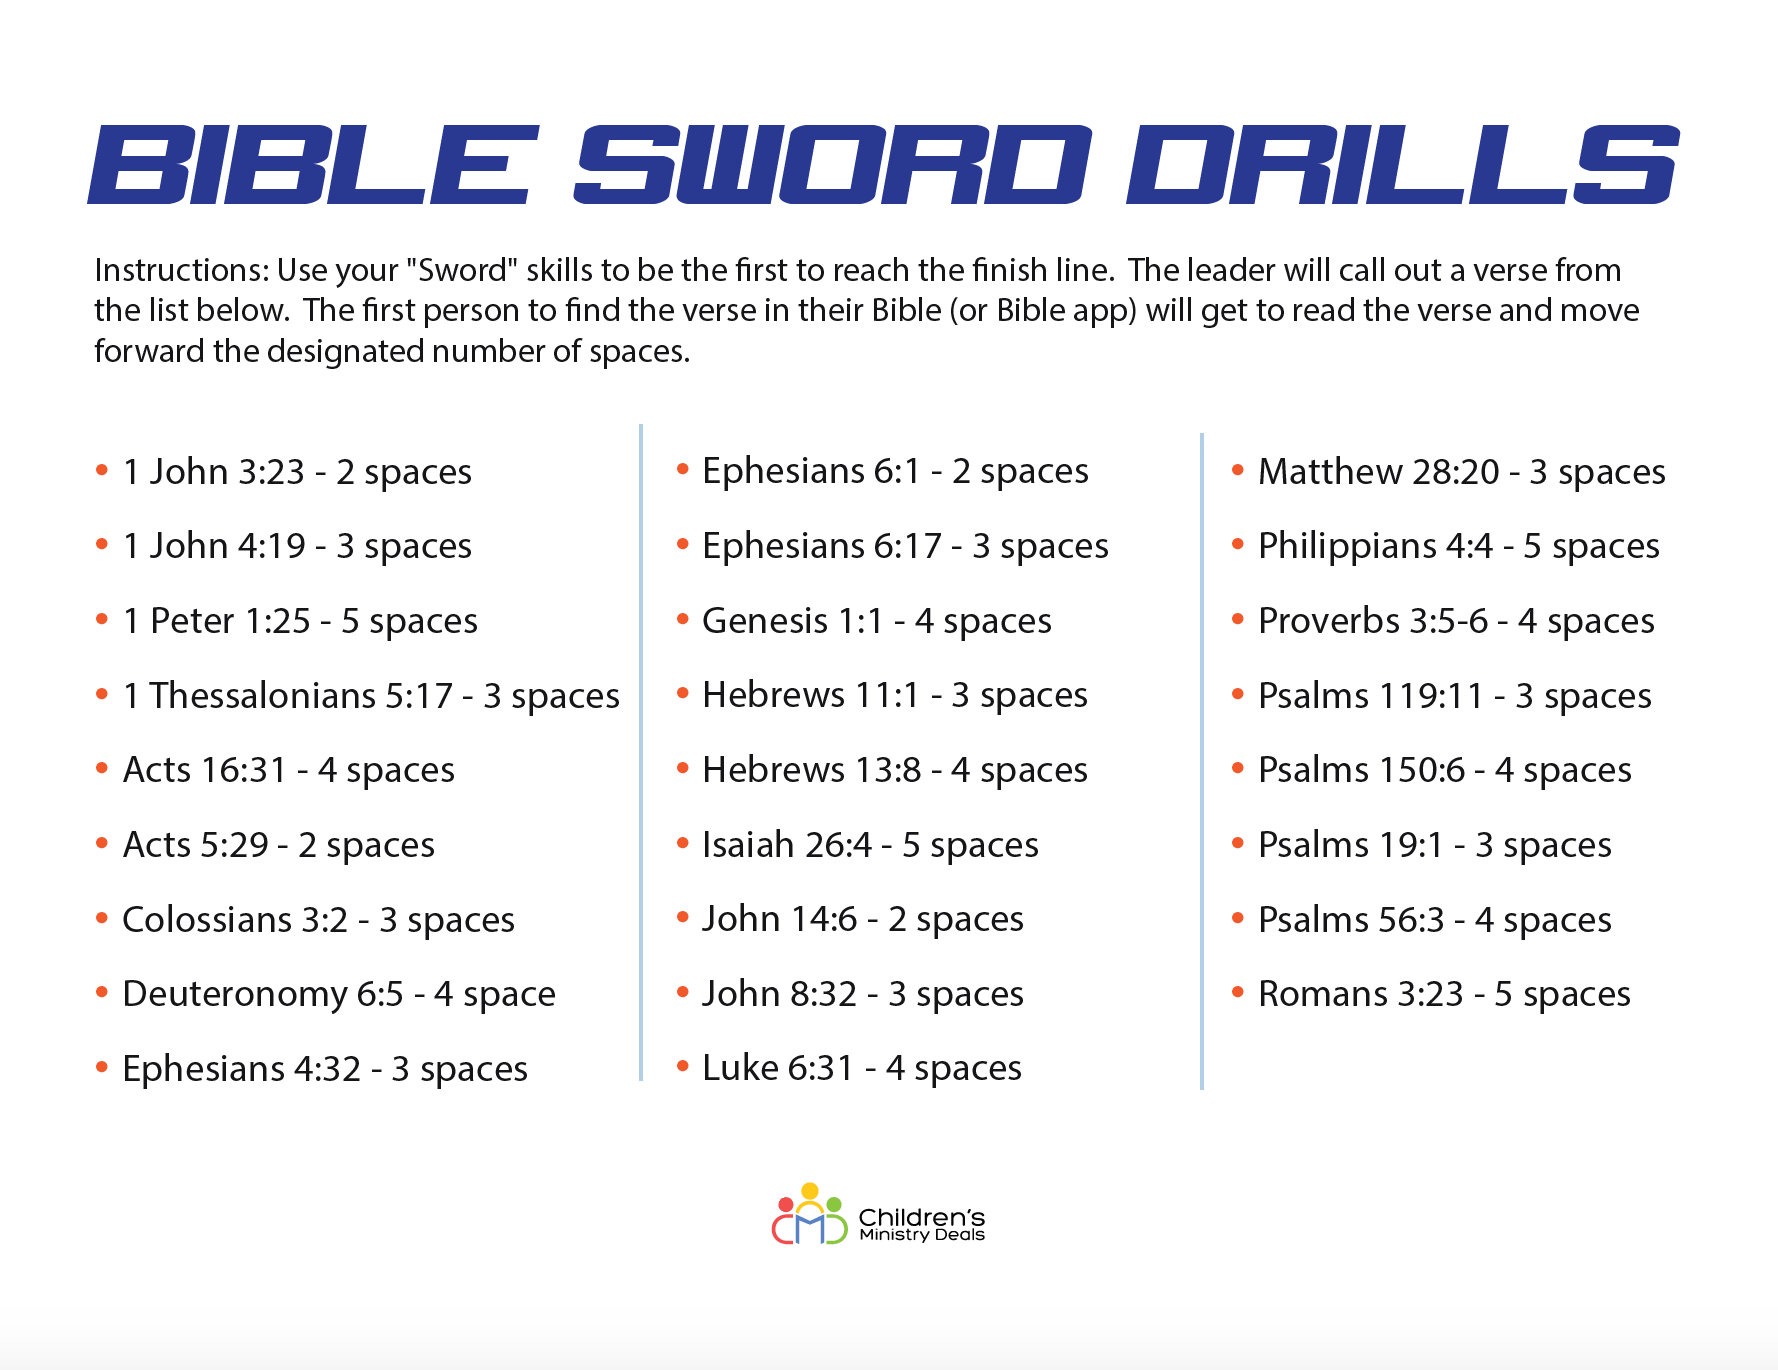 Bible Sword Drills Game